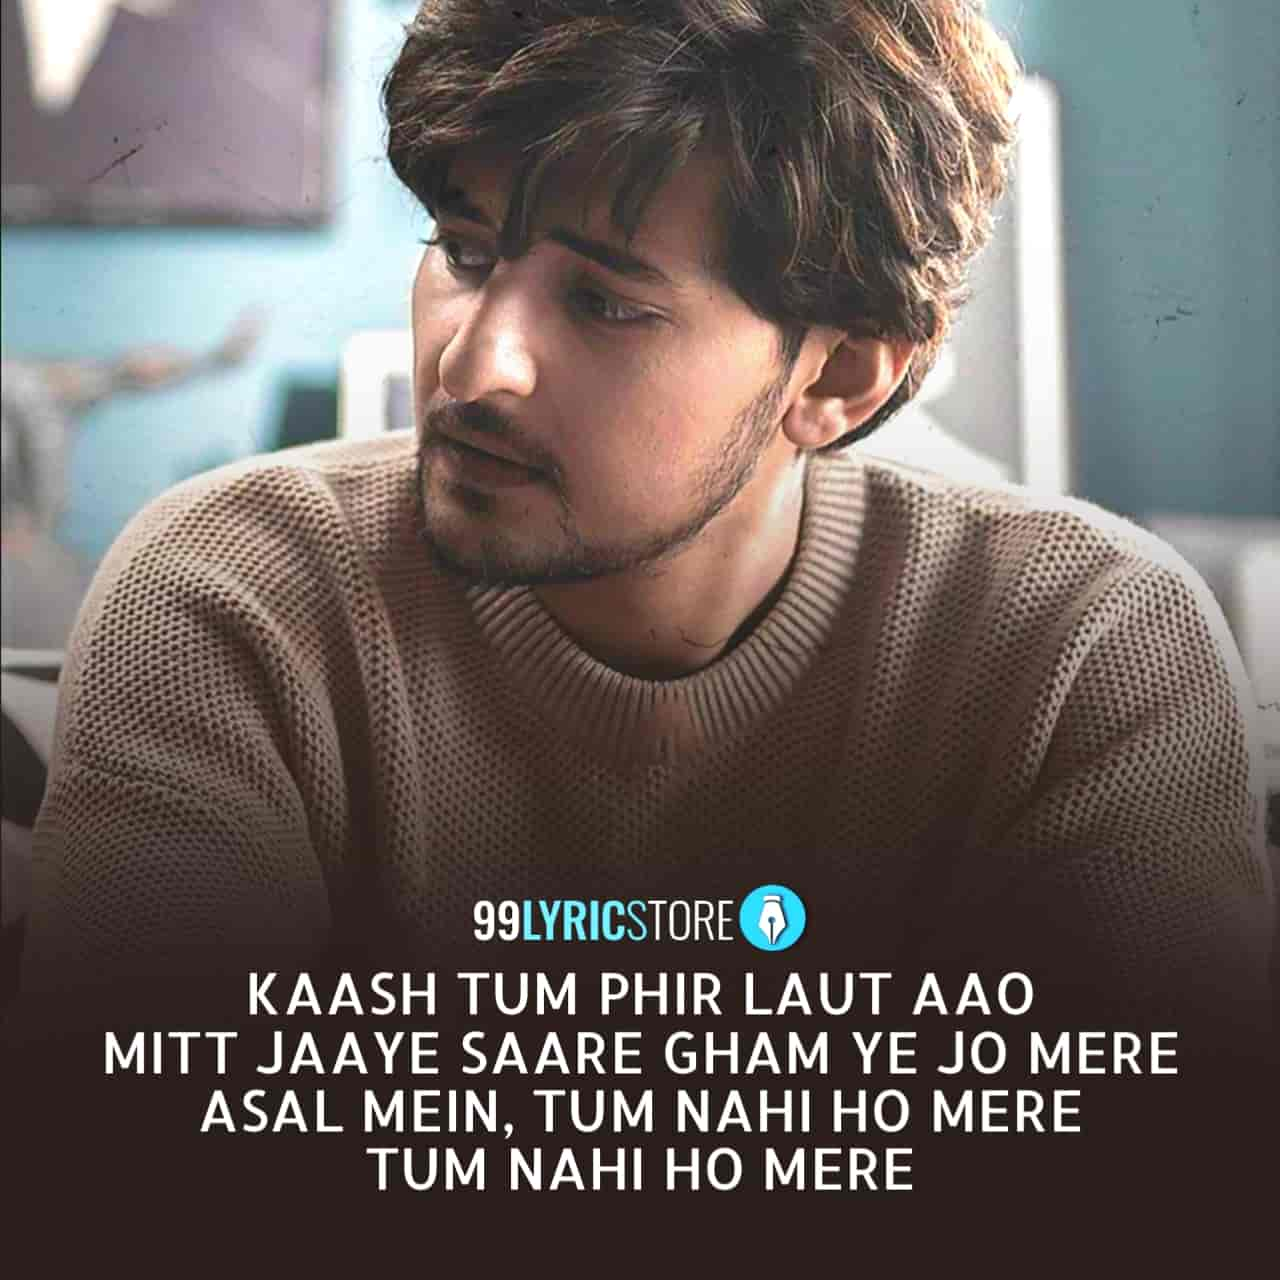 Asal Mein Lyrics :- After releasing a beautiful heartbroken song Tu Mileya, artist Darshan Raval ready to release another melodious track which is titled Asal Mein sung by him. Music of this song given by Gold Boy while this beautiful song Asal Mein has written by Gurpreet Saini. This song is presented by Indie Music label.